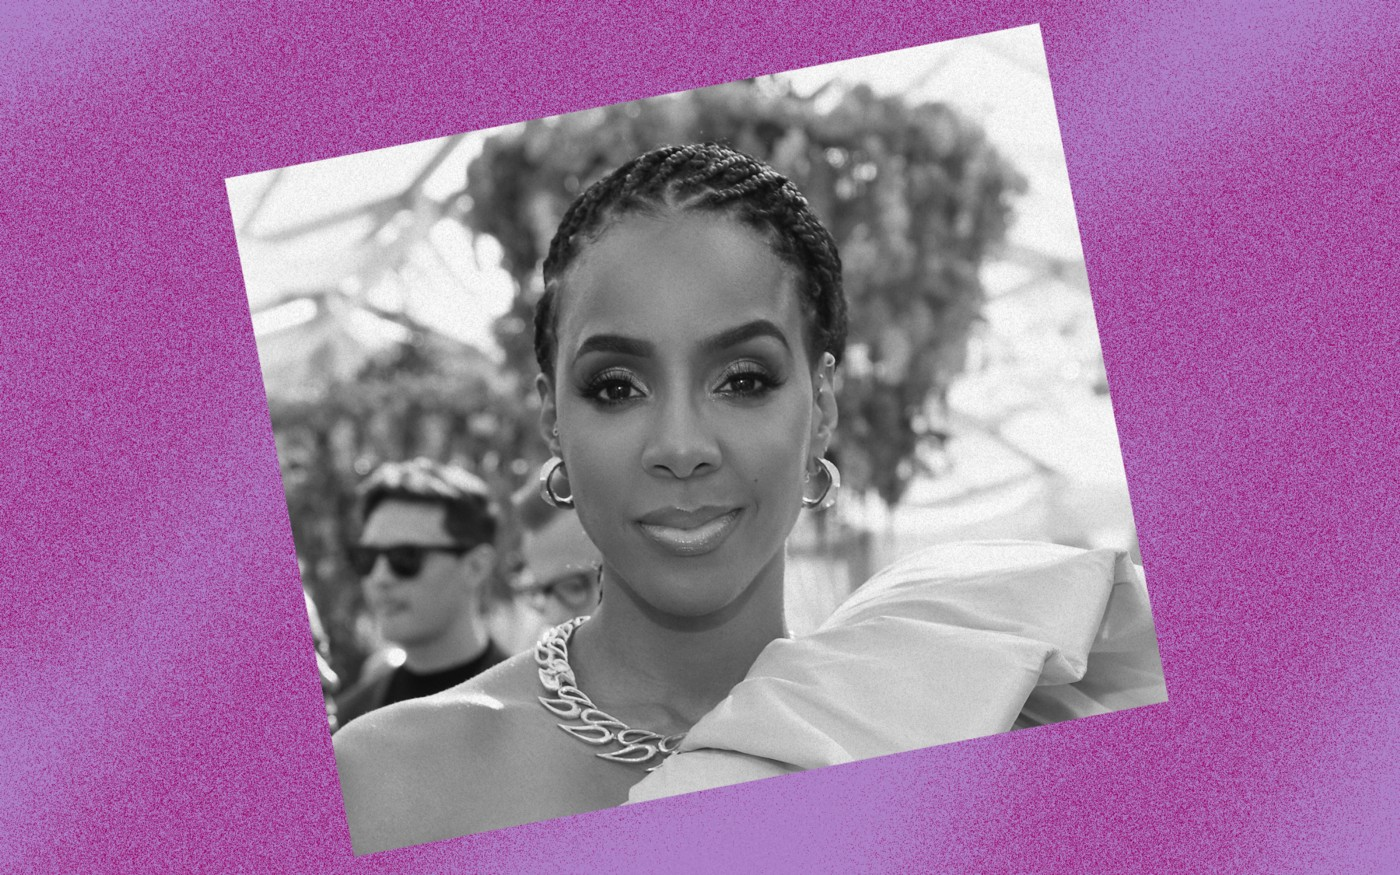 Black and white photo of Kelly Rowland against a violet background.